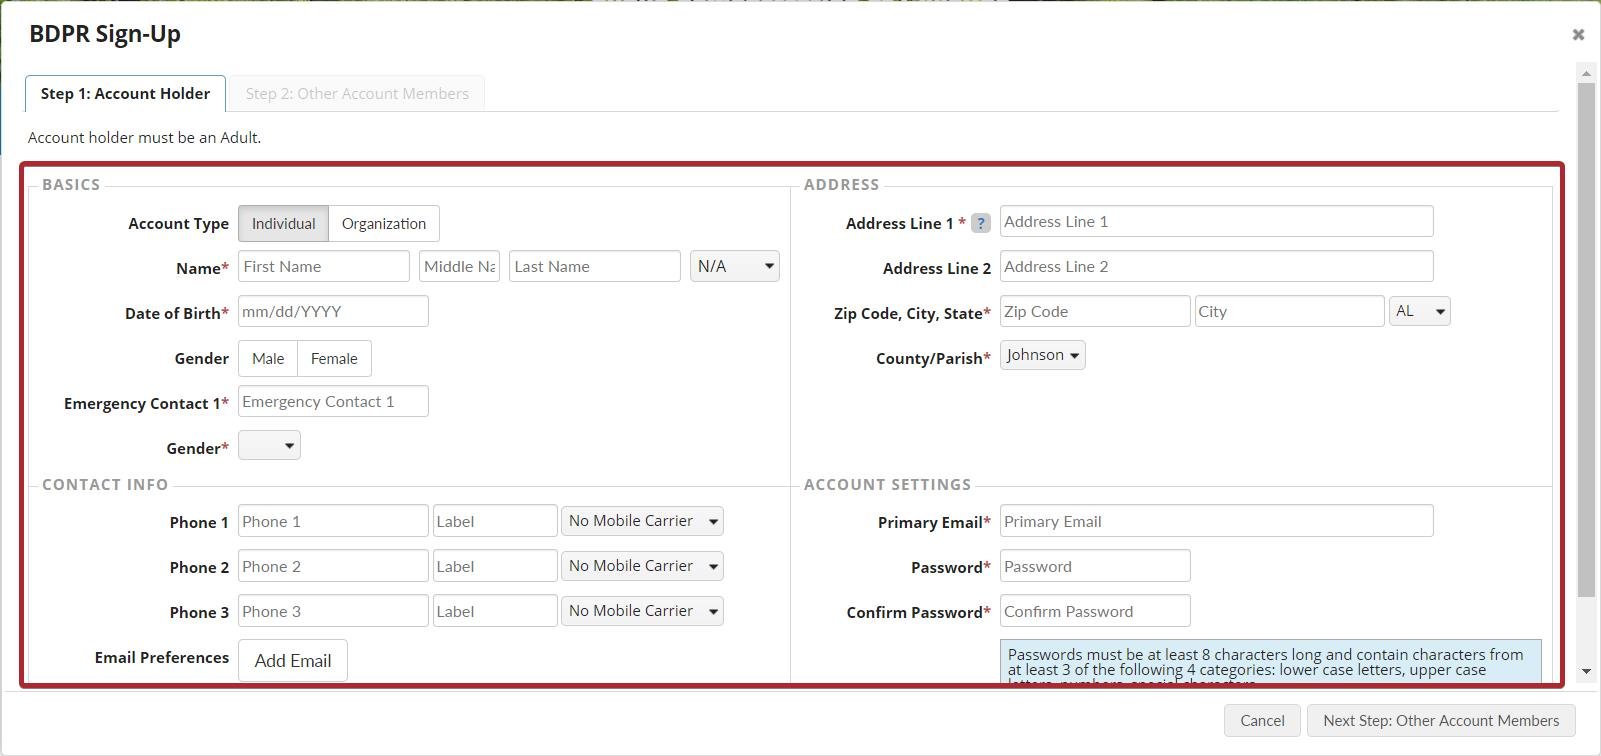 fill_in_account_holder_fields_to_set_up_new_account.jpg